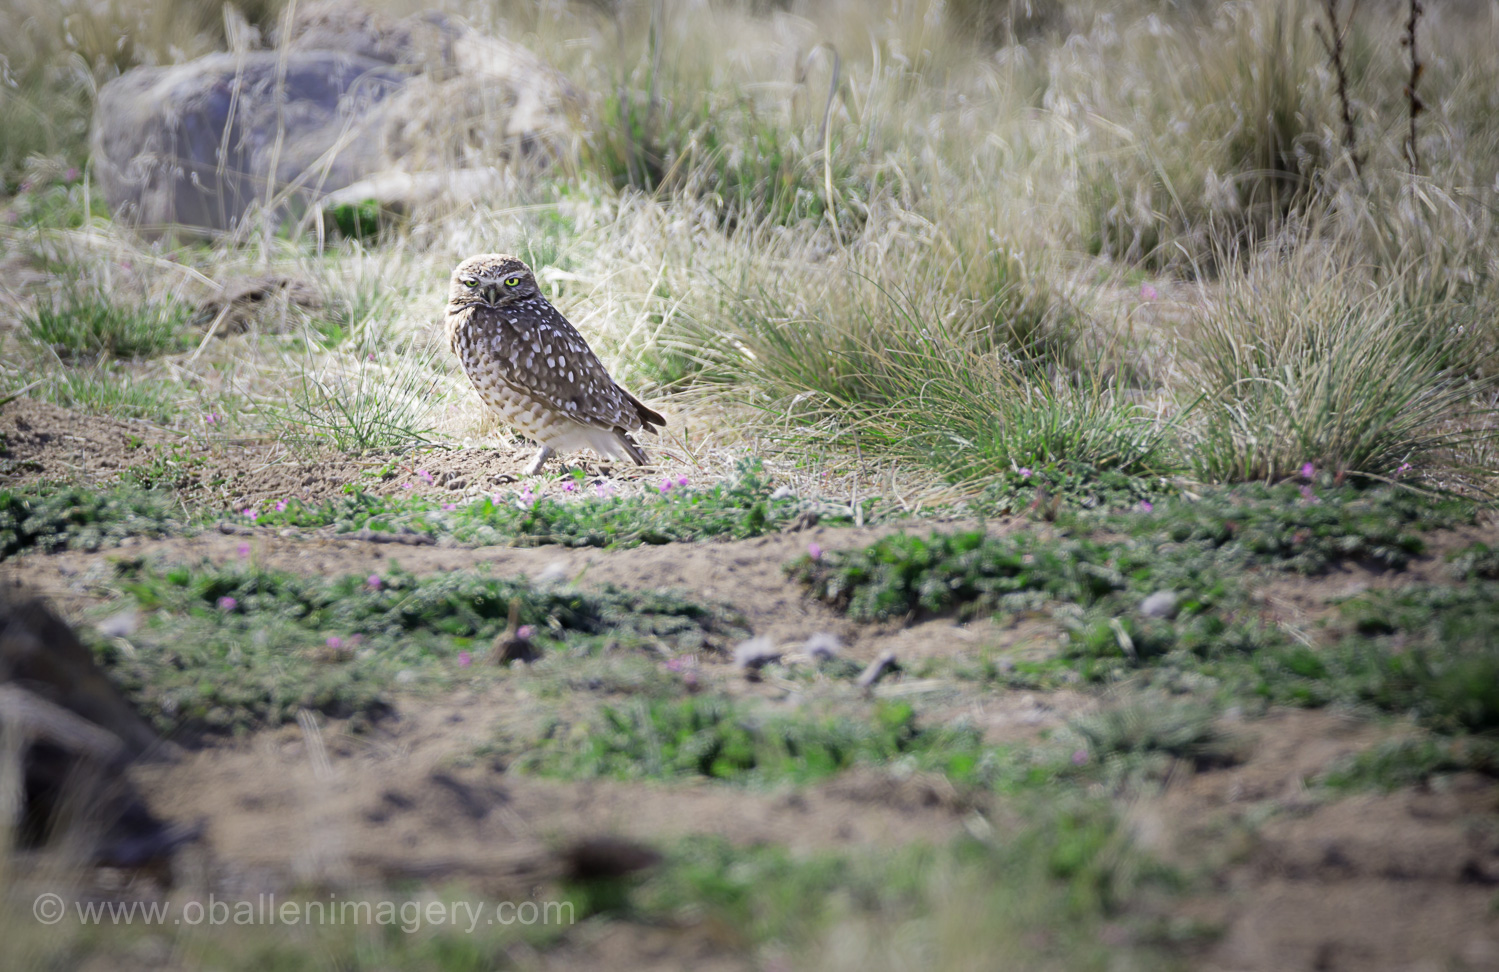 I have never had the opportunity to see a Burrowing Owl.